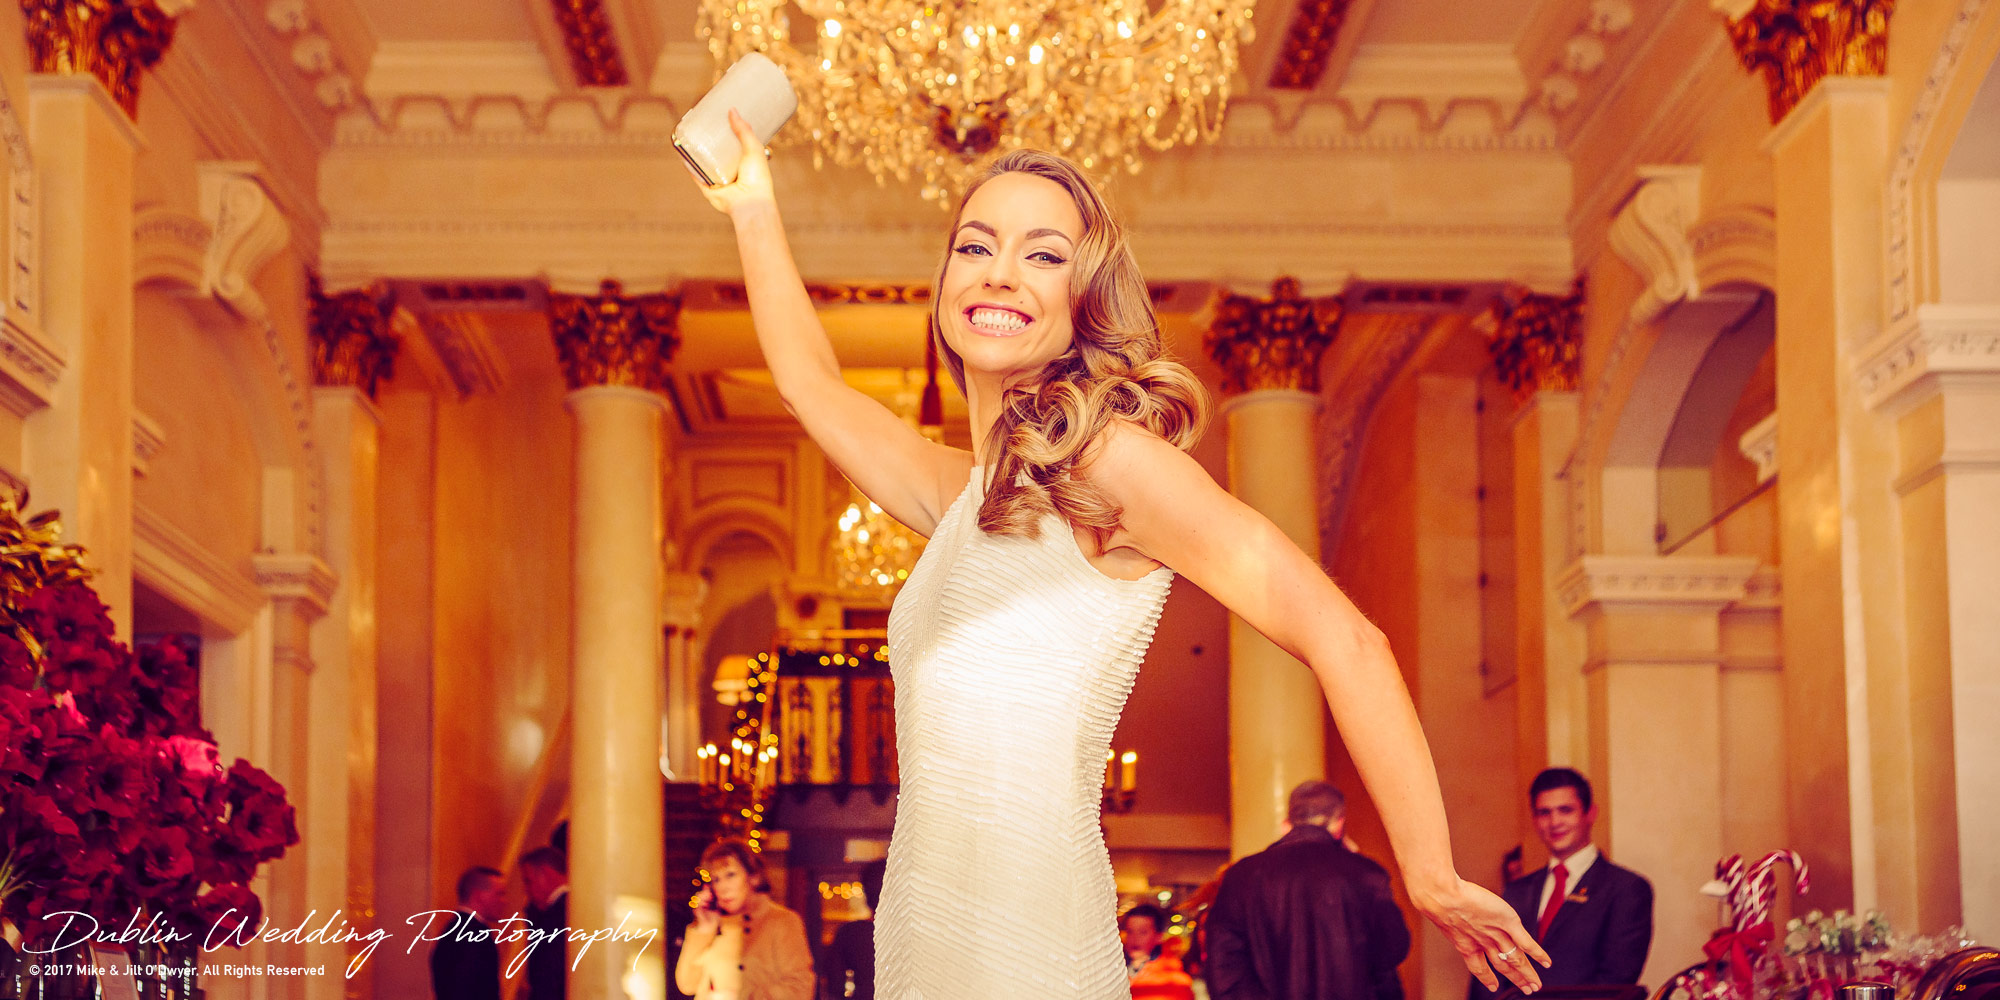 Hotel Wedding at The Shelbourne